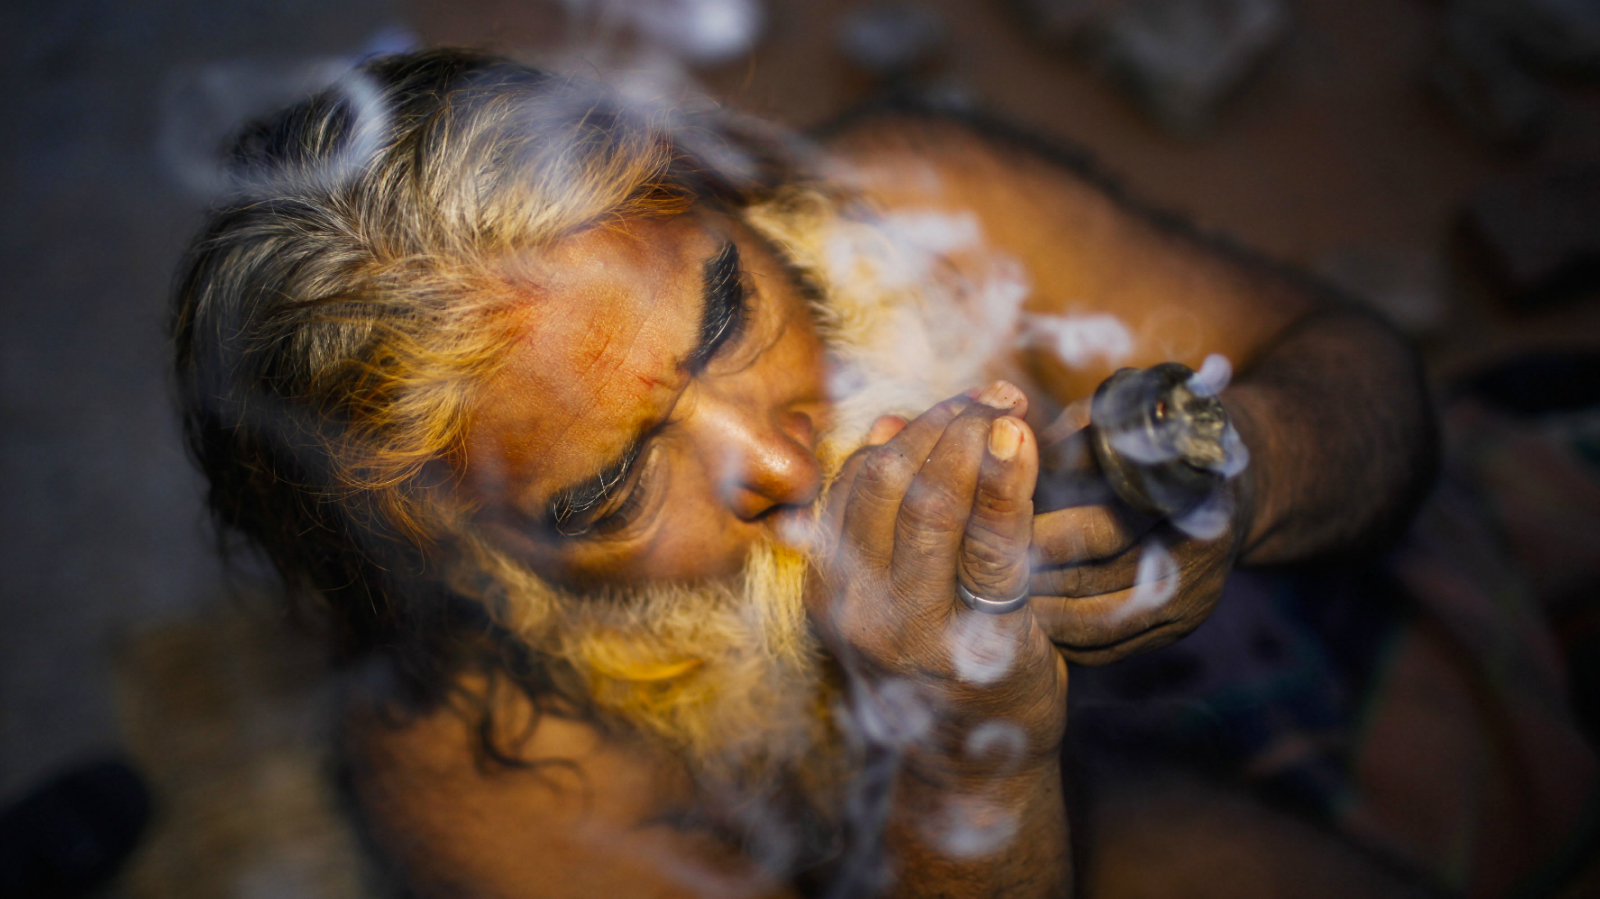 Sadhu (holy man) smokes marijuana from a clay pipe in an early morning at the premises of Pashupati Temple in Kathmandu, Nepal, 09 March 2013 on the eve of the Hindu's biggest festival Maha Shivaratri. More than 100,000 Hindu devotees including Sadhus from across the country and neighbouring India already gathered to celebrate the birthday of Lord Shiva, the god of creation and destruction. Hindus mark the Maha Shivratri festival by offering special prayers and fasting.